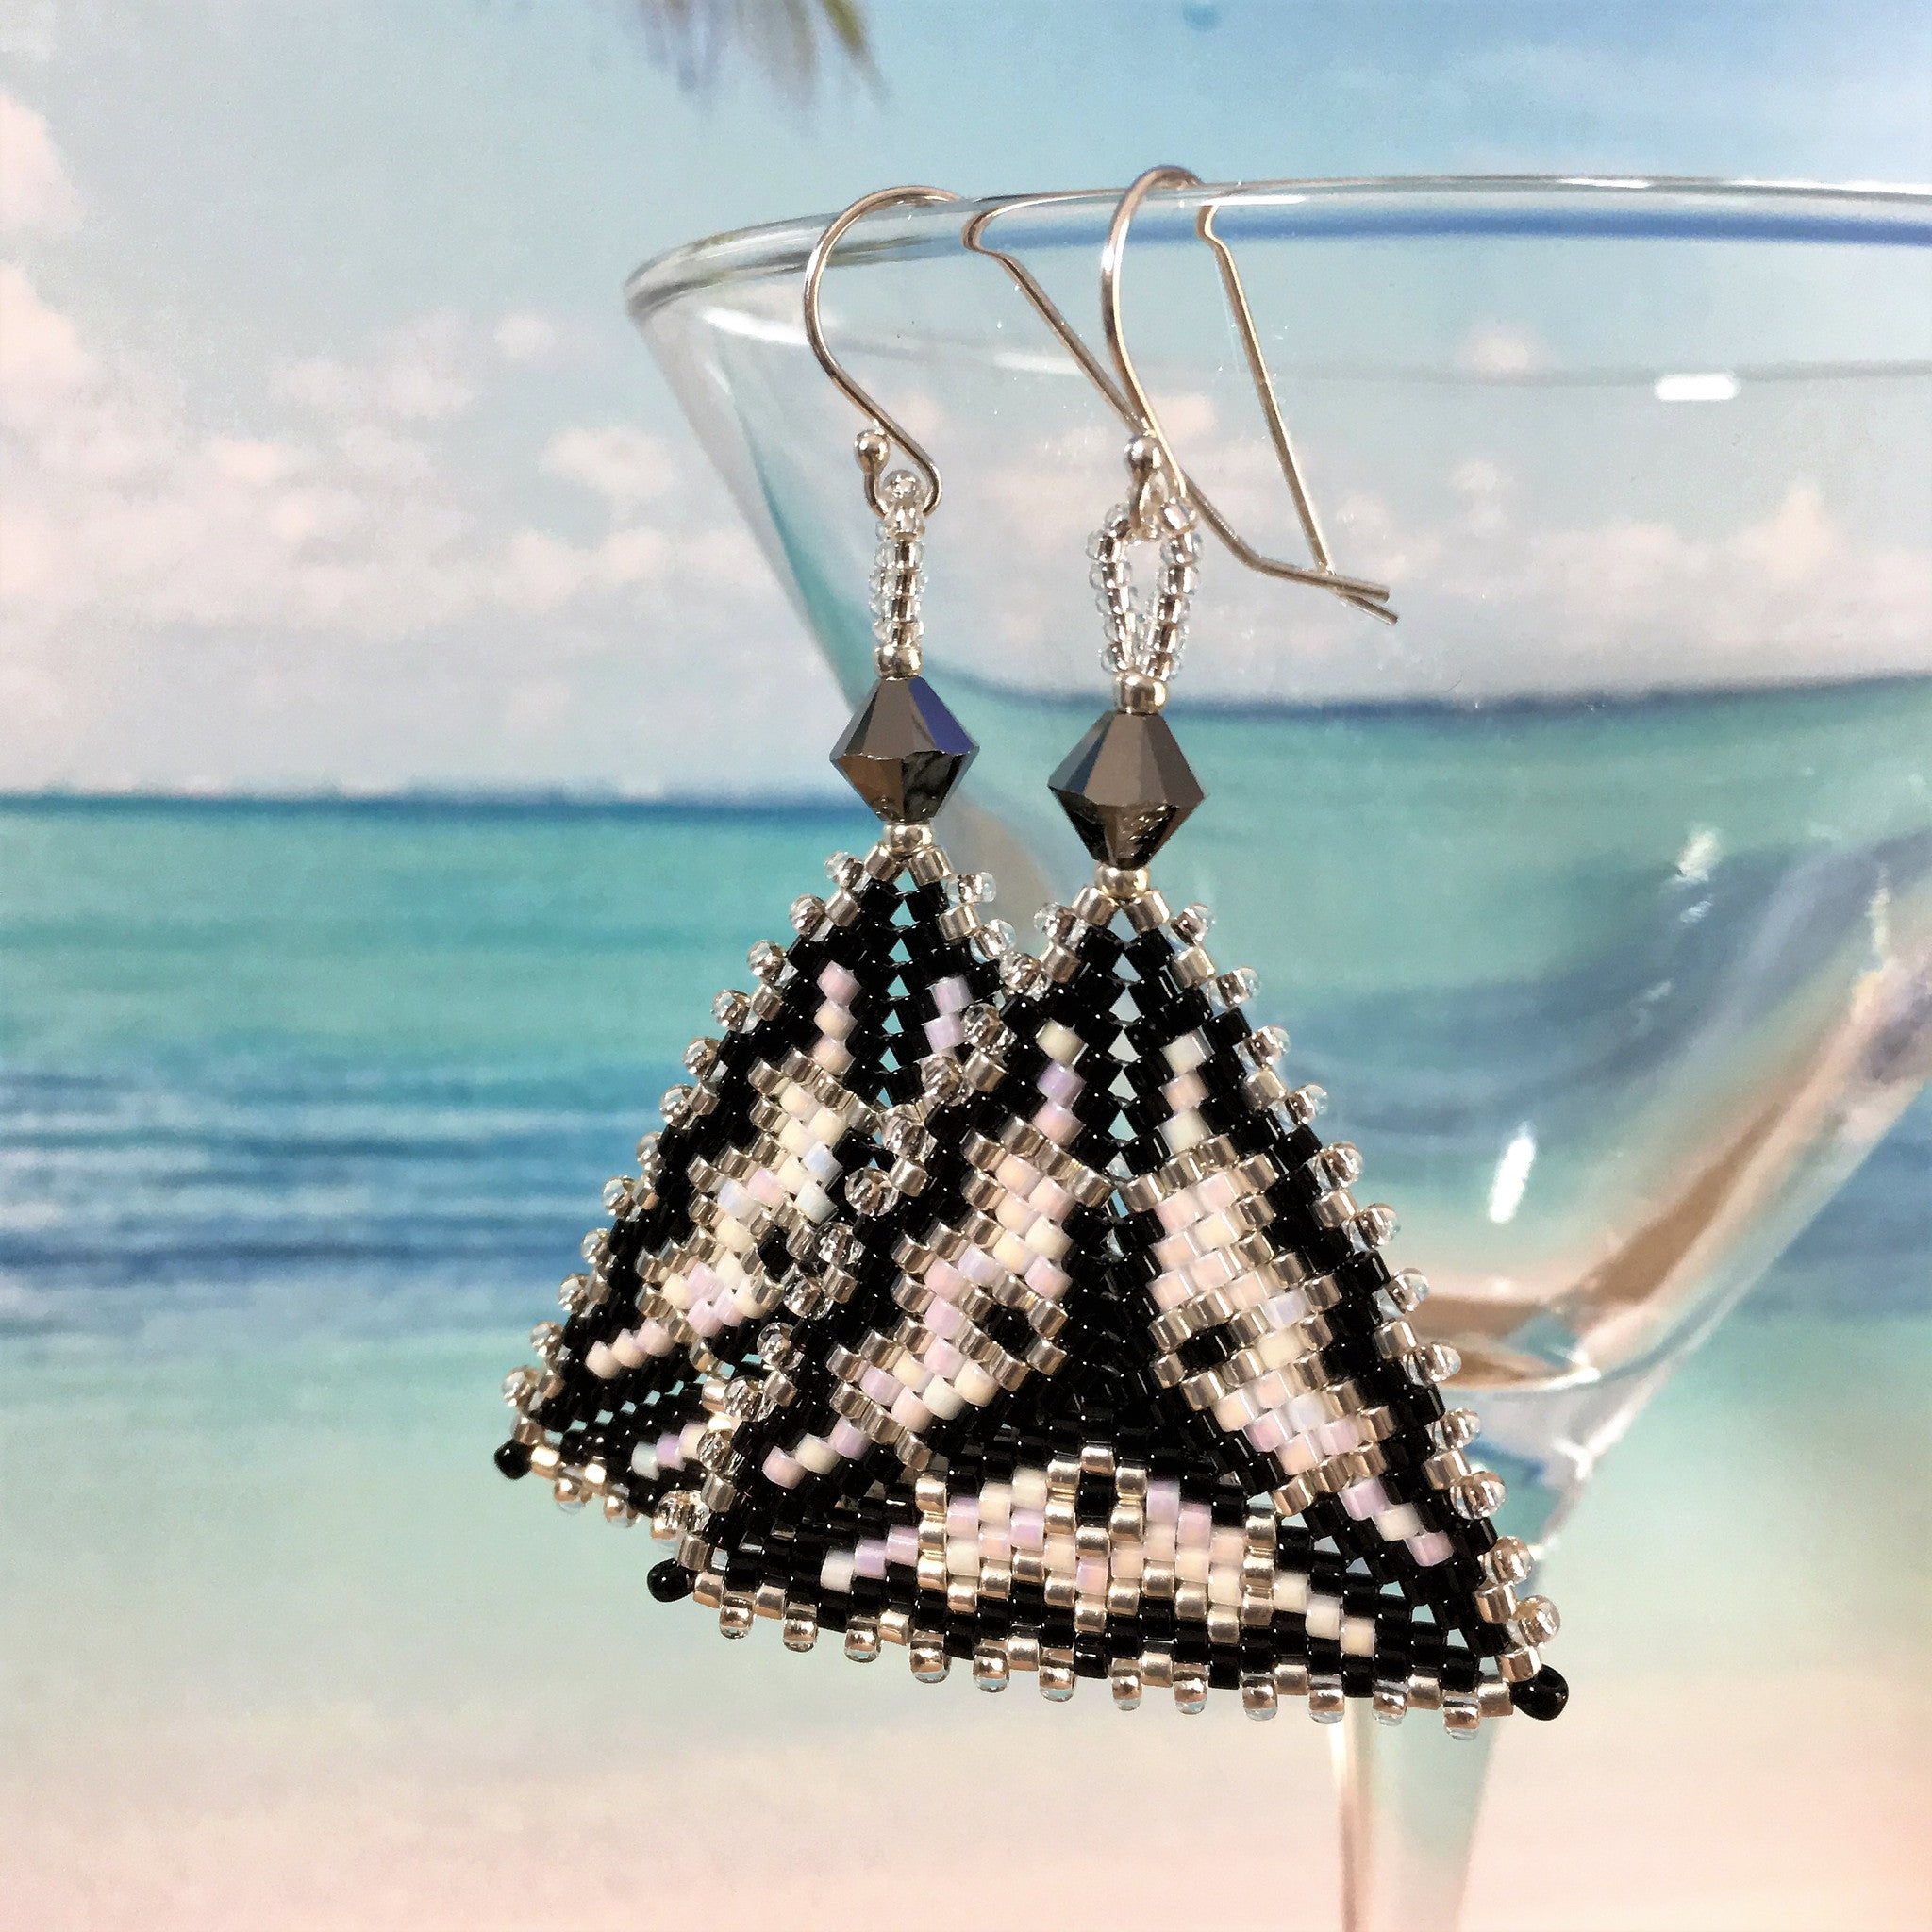 Geometric Modern Triangle Black Silver White Earrings hand made custom bead work Science Statement Sterling silver Swarovski crystals Beaded By The Beach Star Trek